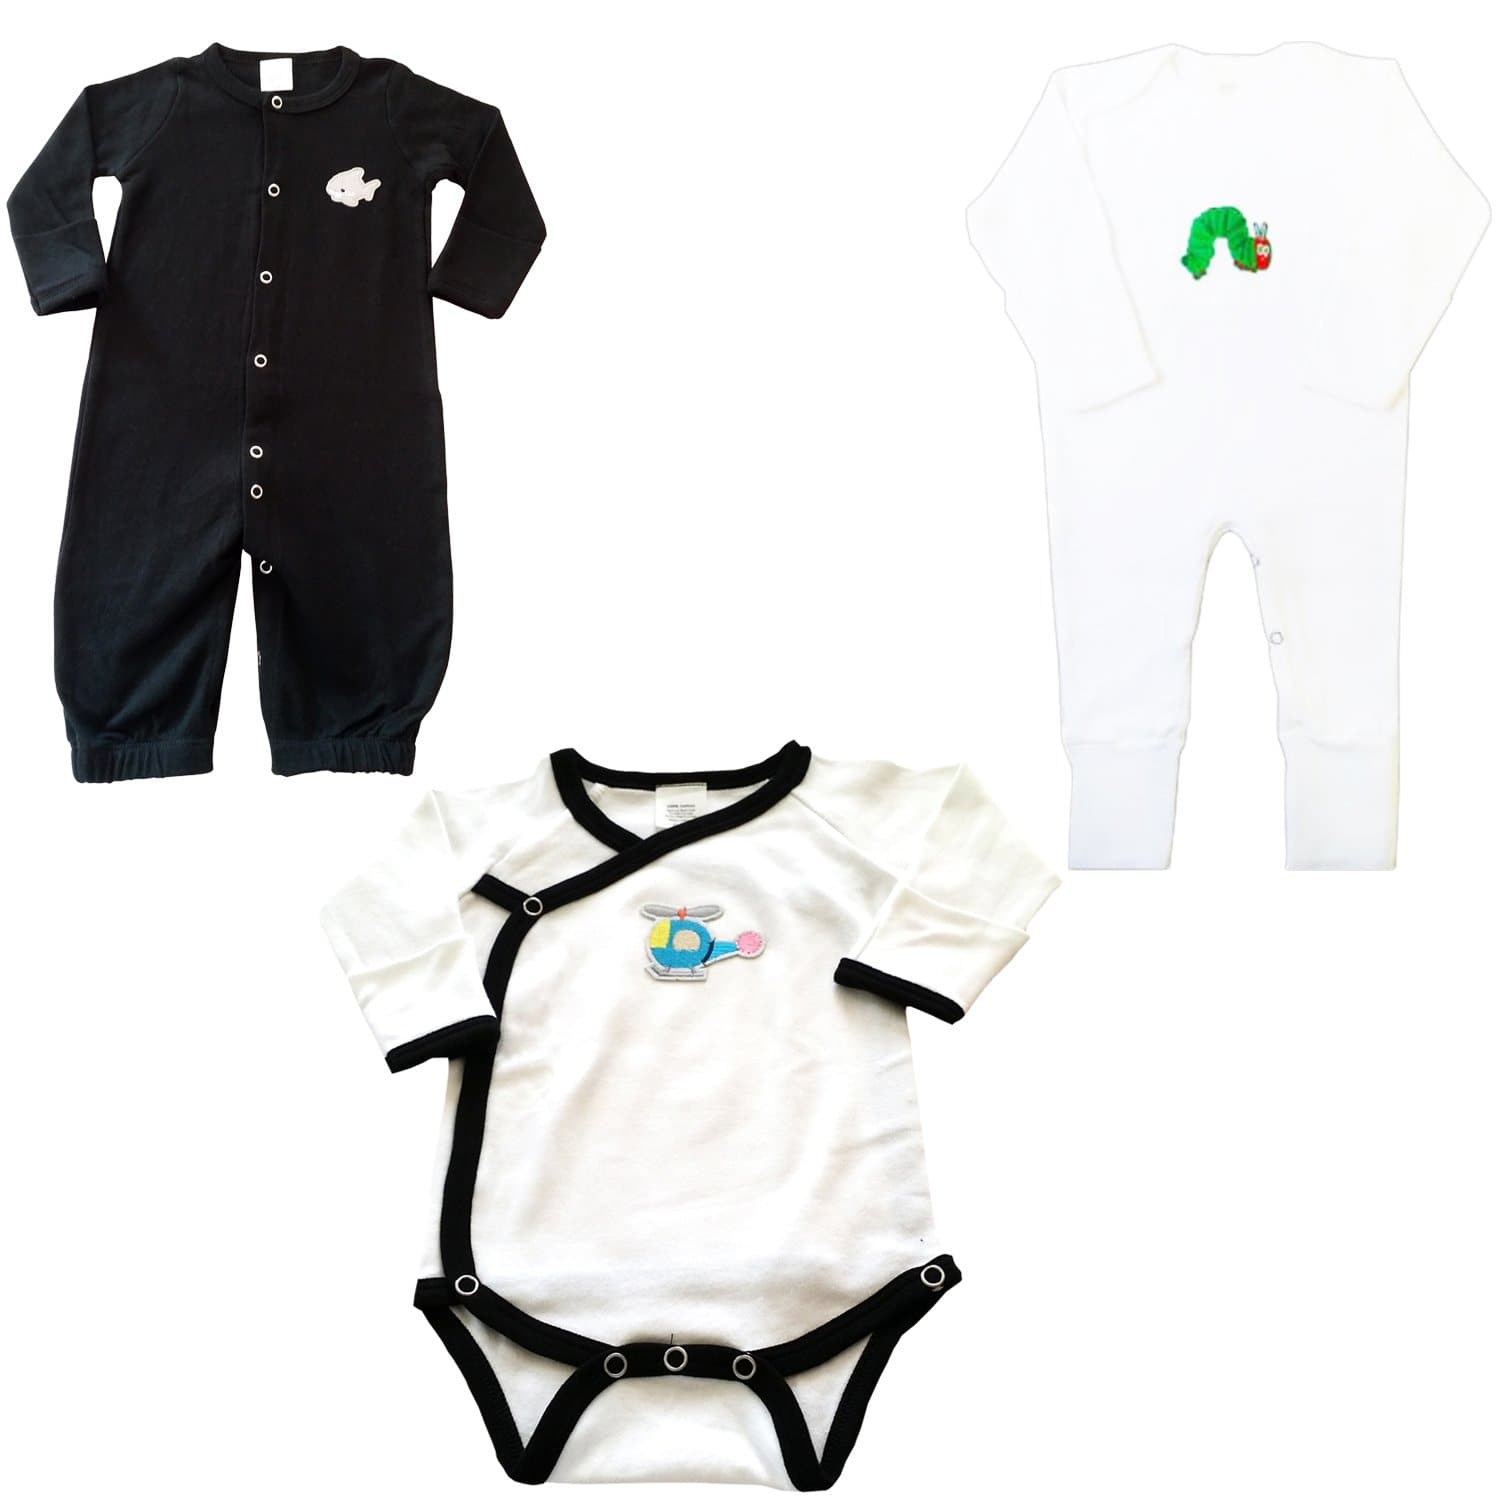 3 Piece Infant Bundle Set - Black Night Gown, Caterpillar Jumpsuit & Onesie